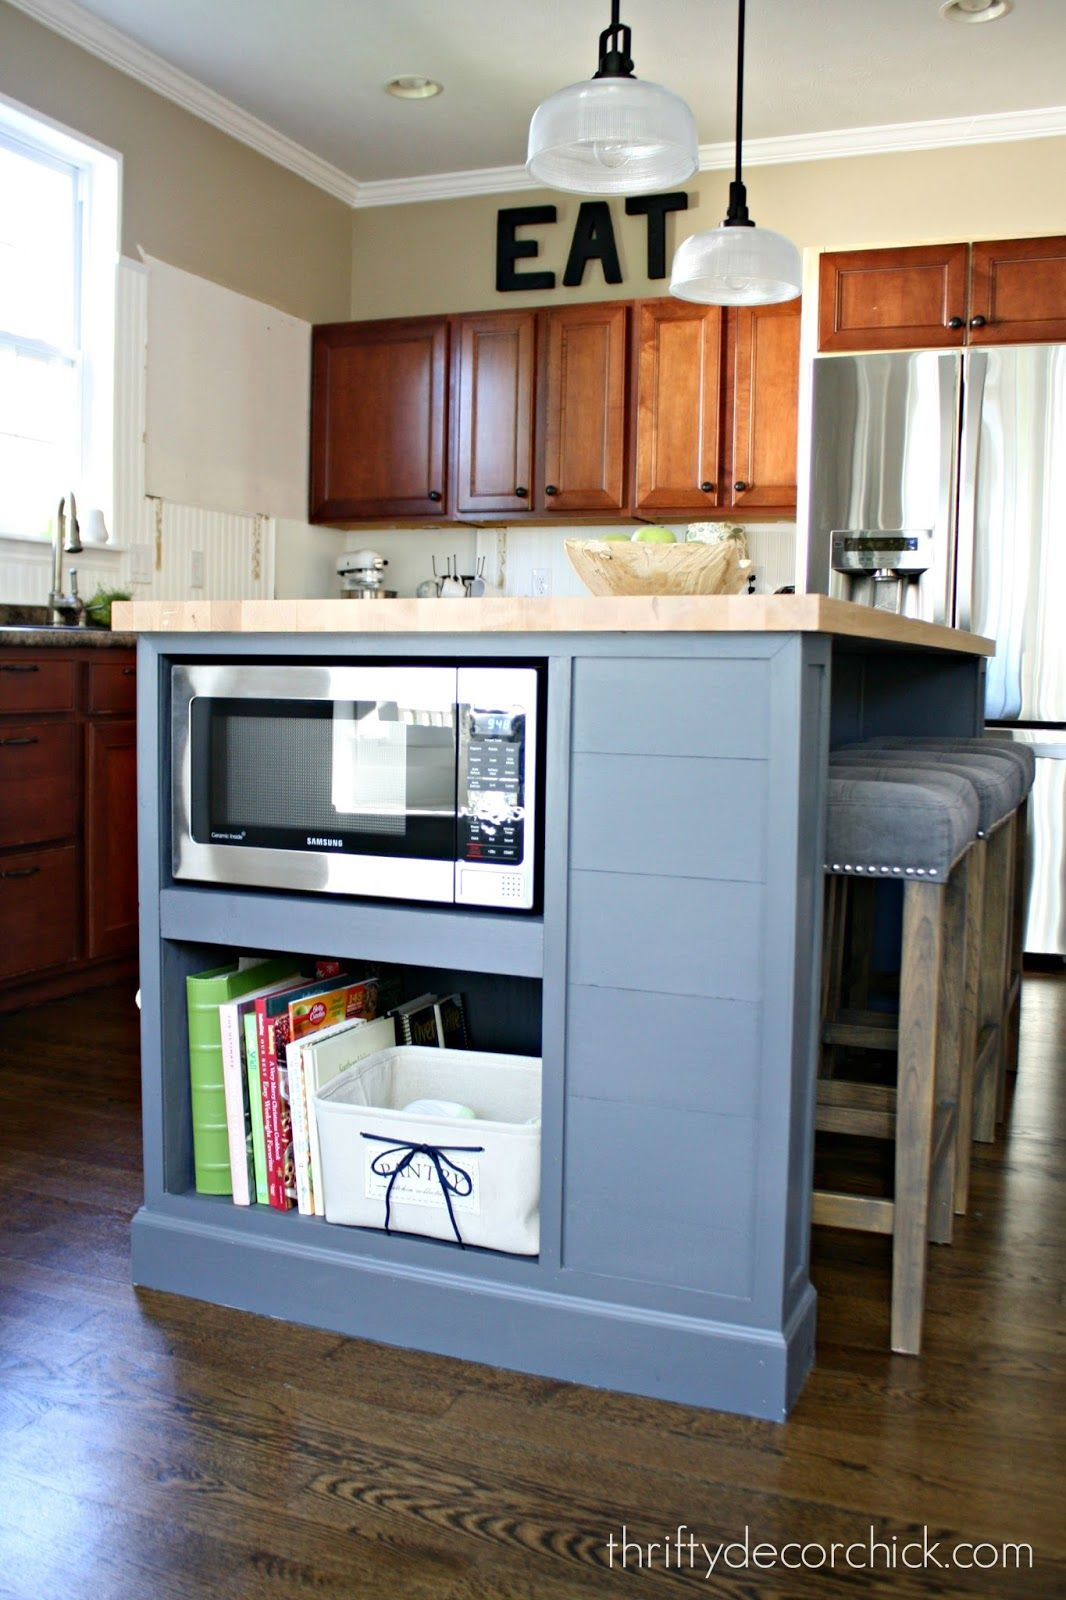 Microwave in the Island! (Finally!) | Kitchens, Thrifty decor chick ...